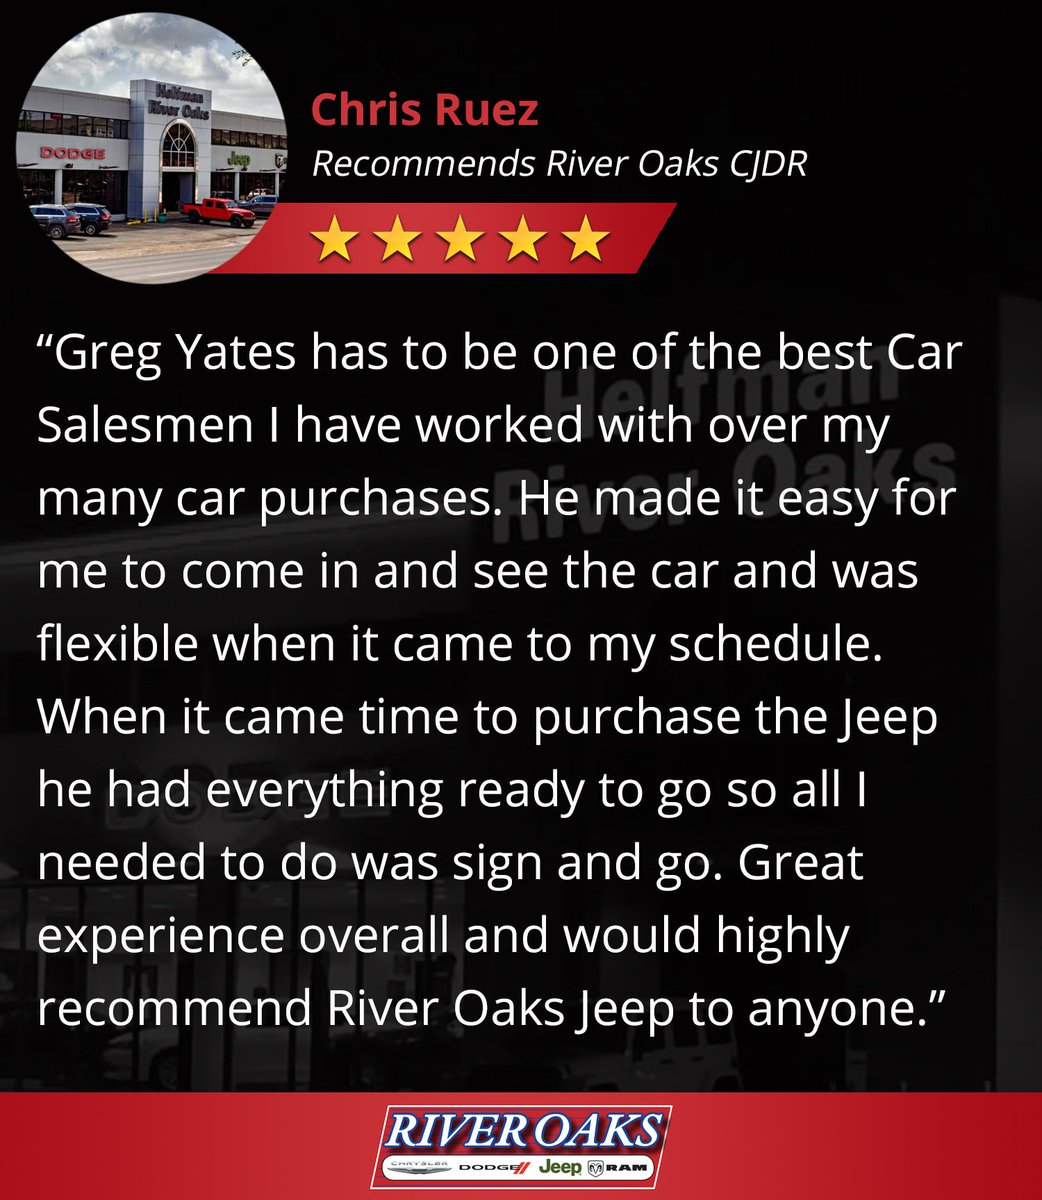 River Oaks Dodge >> River Oaks Chrysler Jeep Dodge Ram Riveroakscjdr Twitter